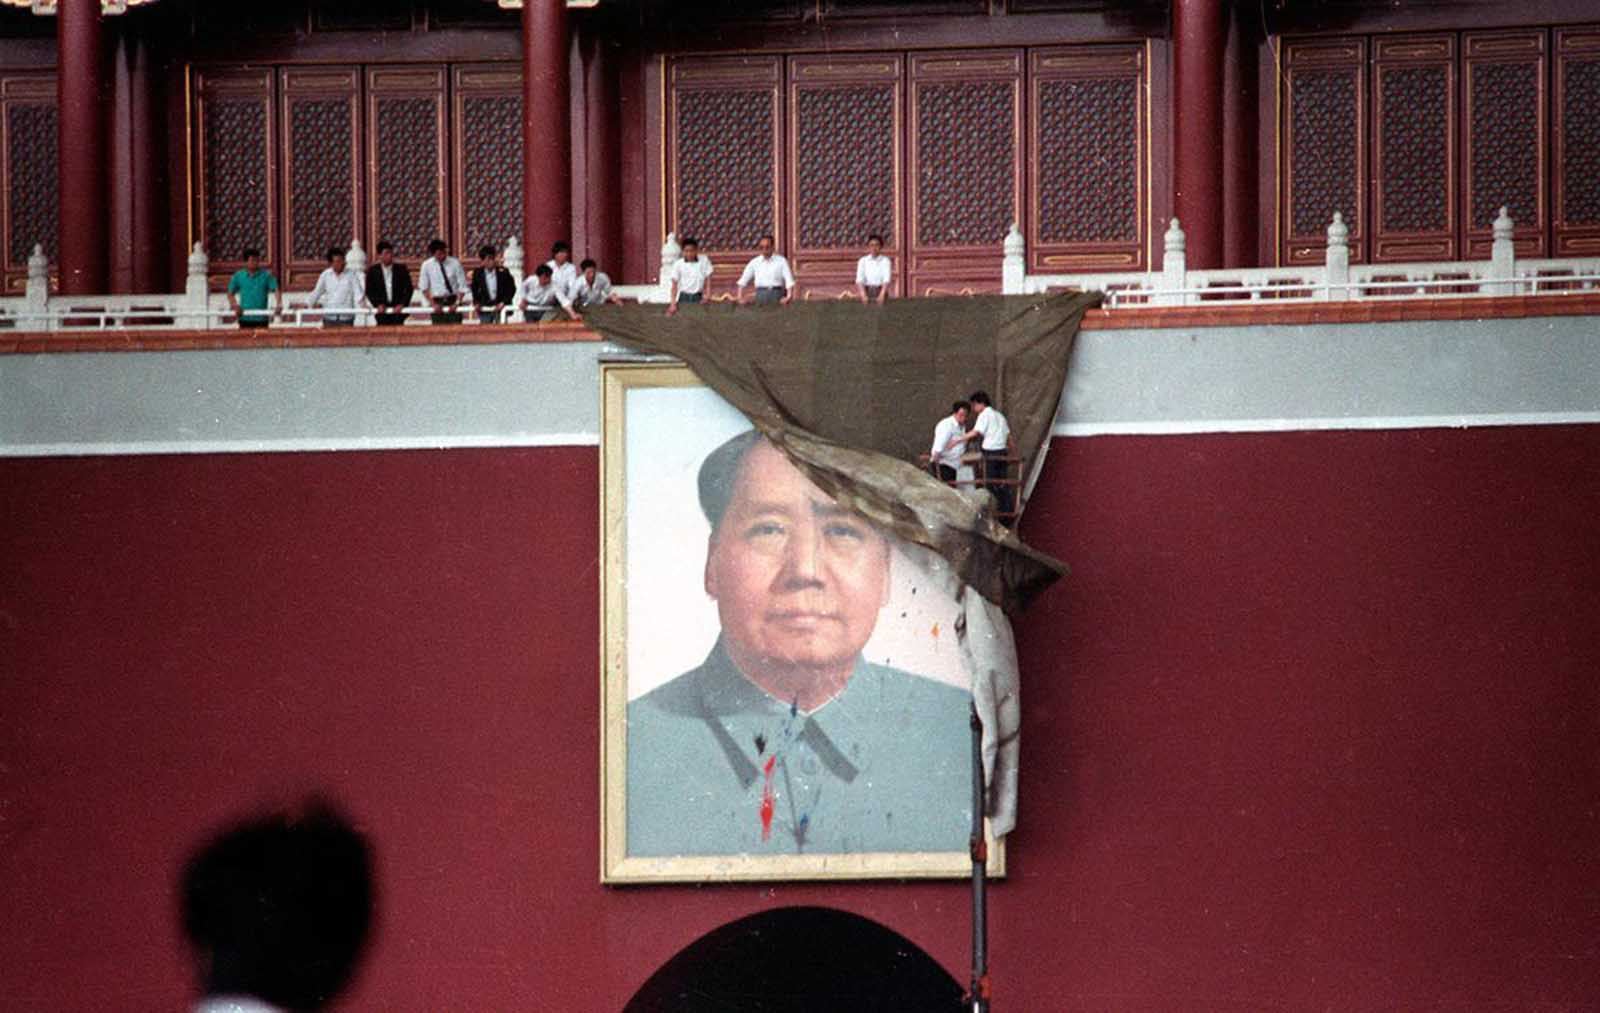 Workmen try to drape the portrait of Mao Tse-tung in Beijing's Tiananmen Square after it was pelted with paint, on May 23, 1989.